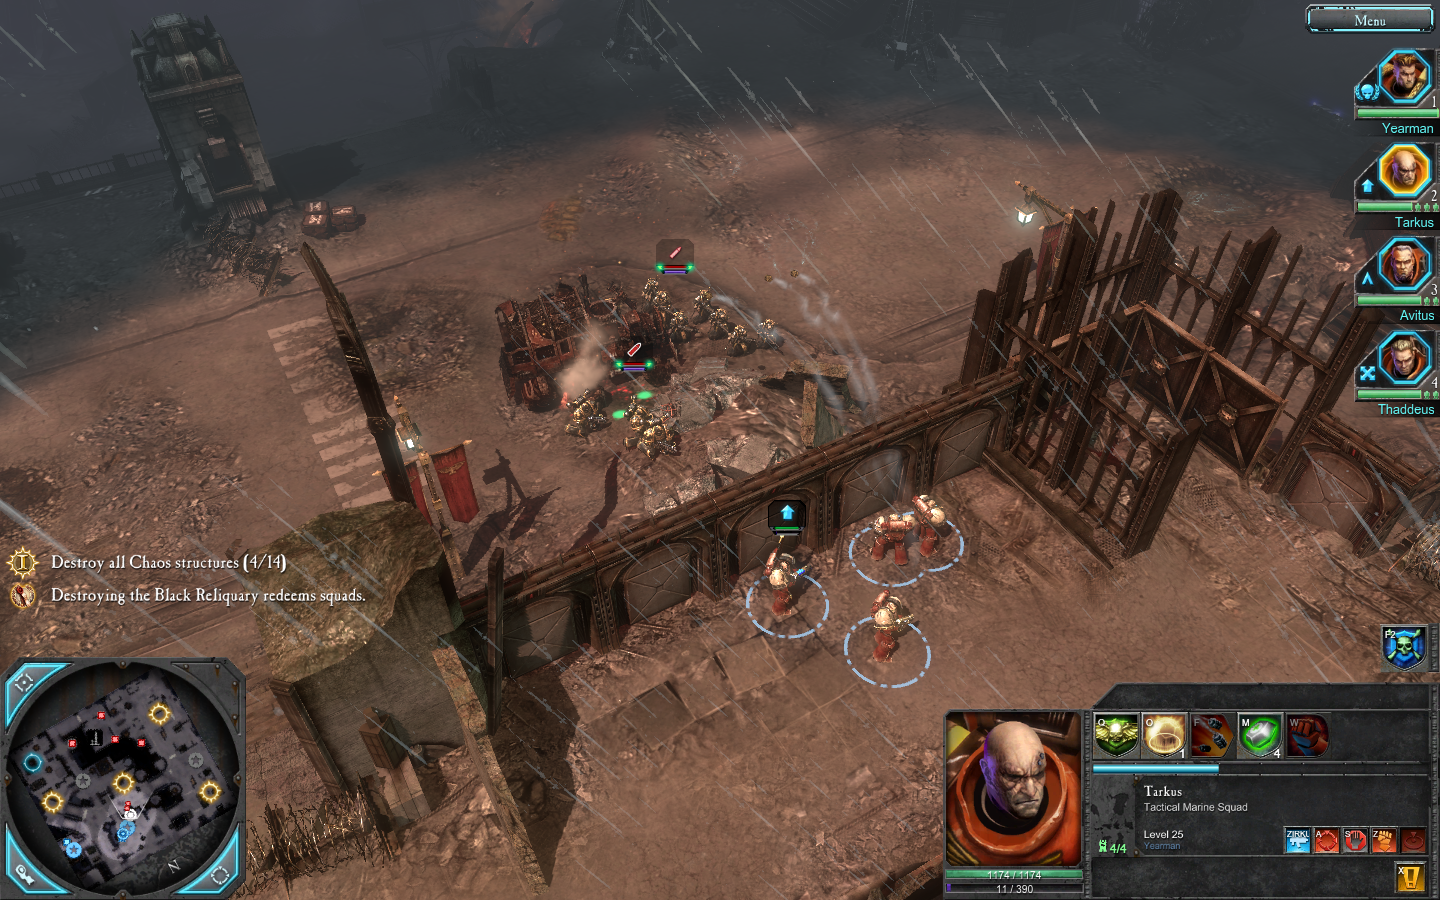 Warhammer 40,000: Dawn of War II - Chaos Rising Windows Throwing grenades over a wall at some unsuspecting Chaos soldiers.